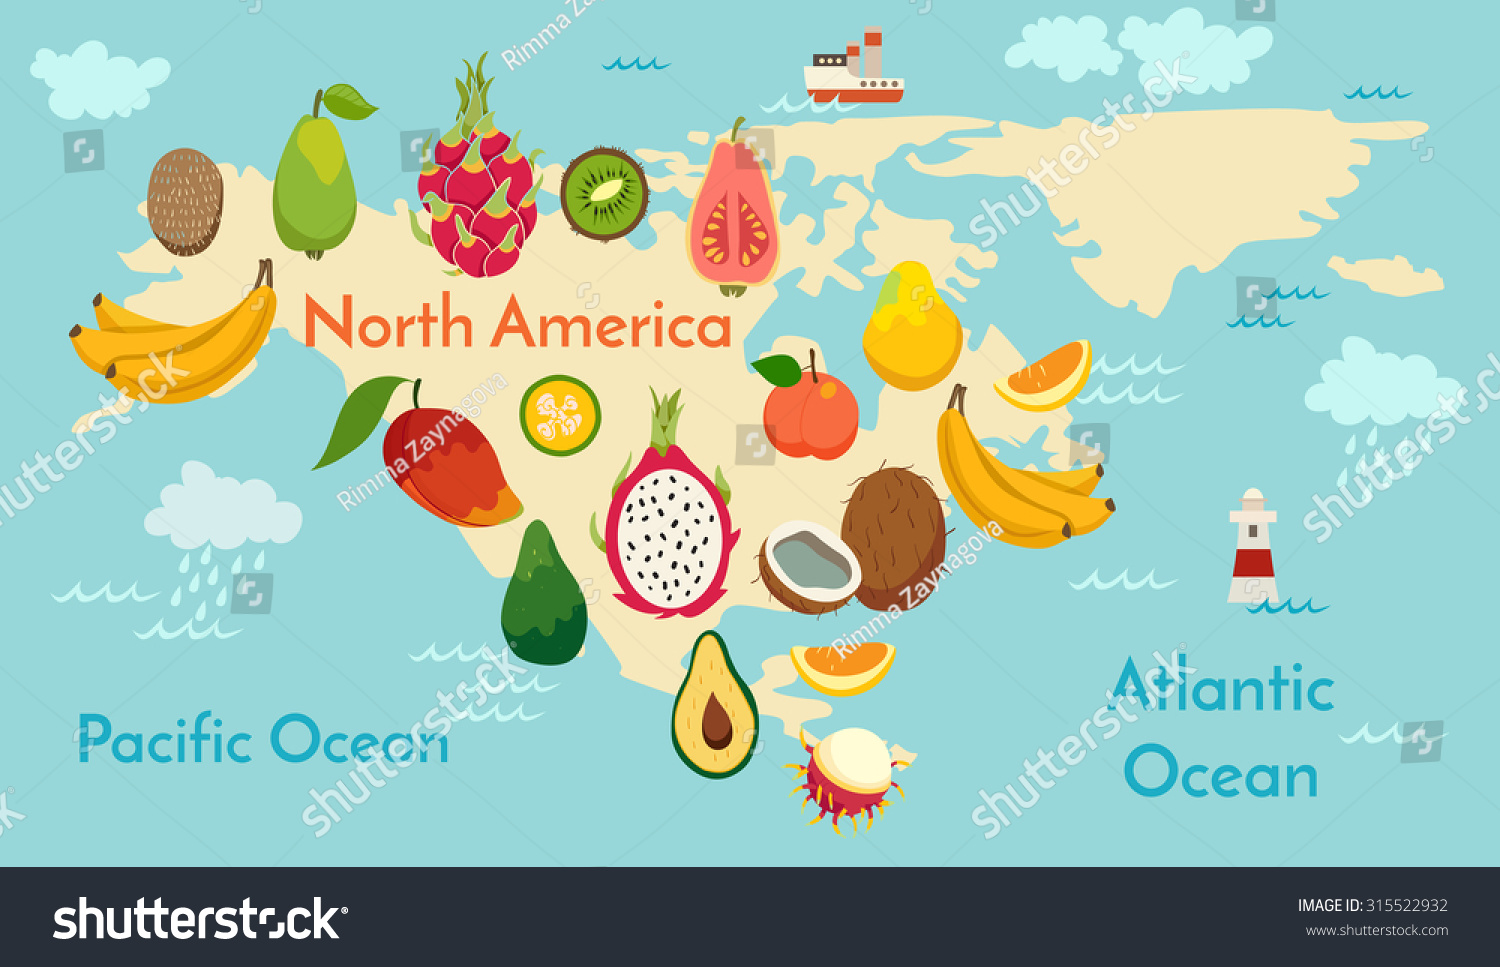 Fruit World Map North America Vector Stock Vector - World map north america